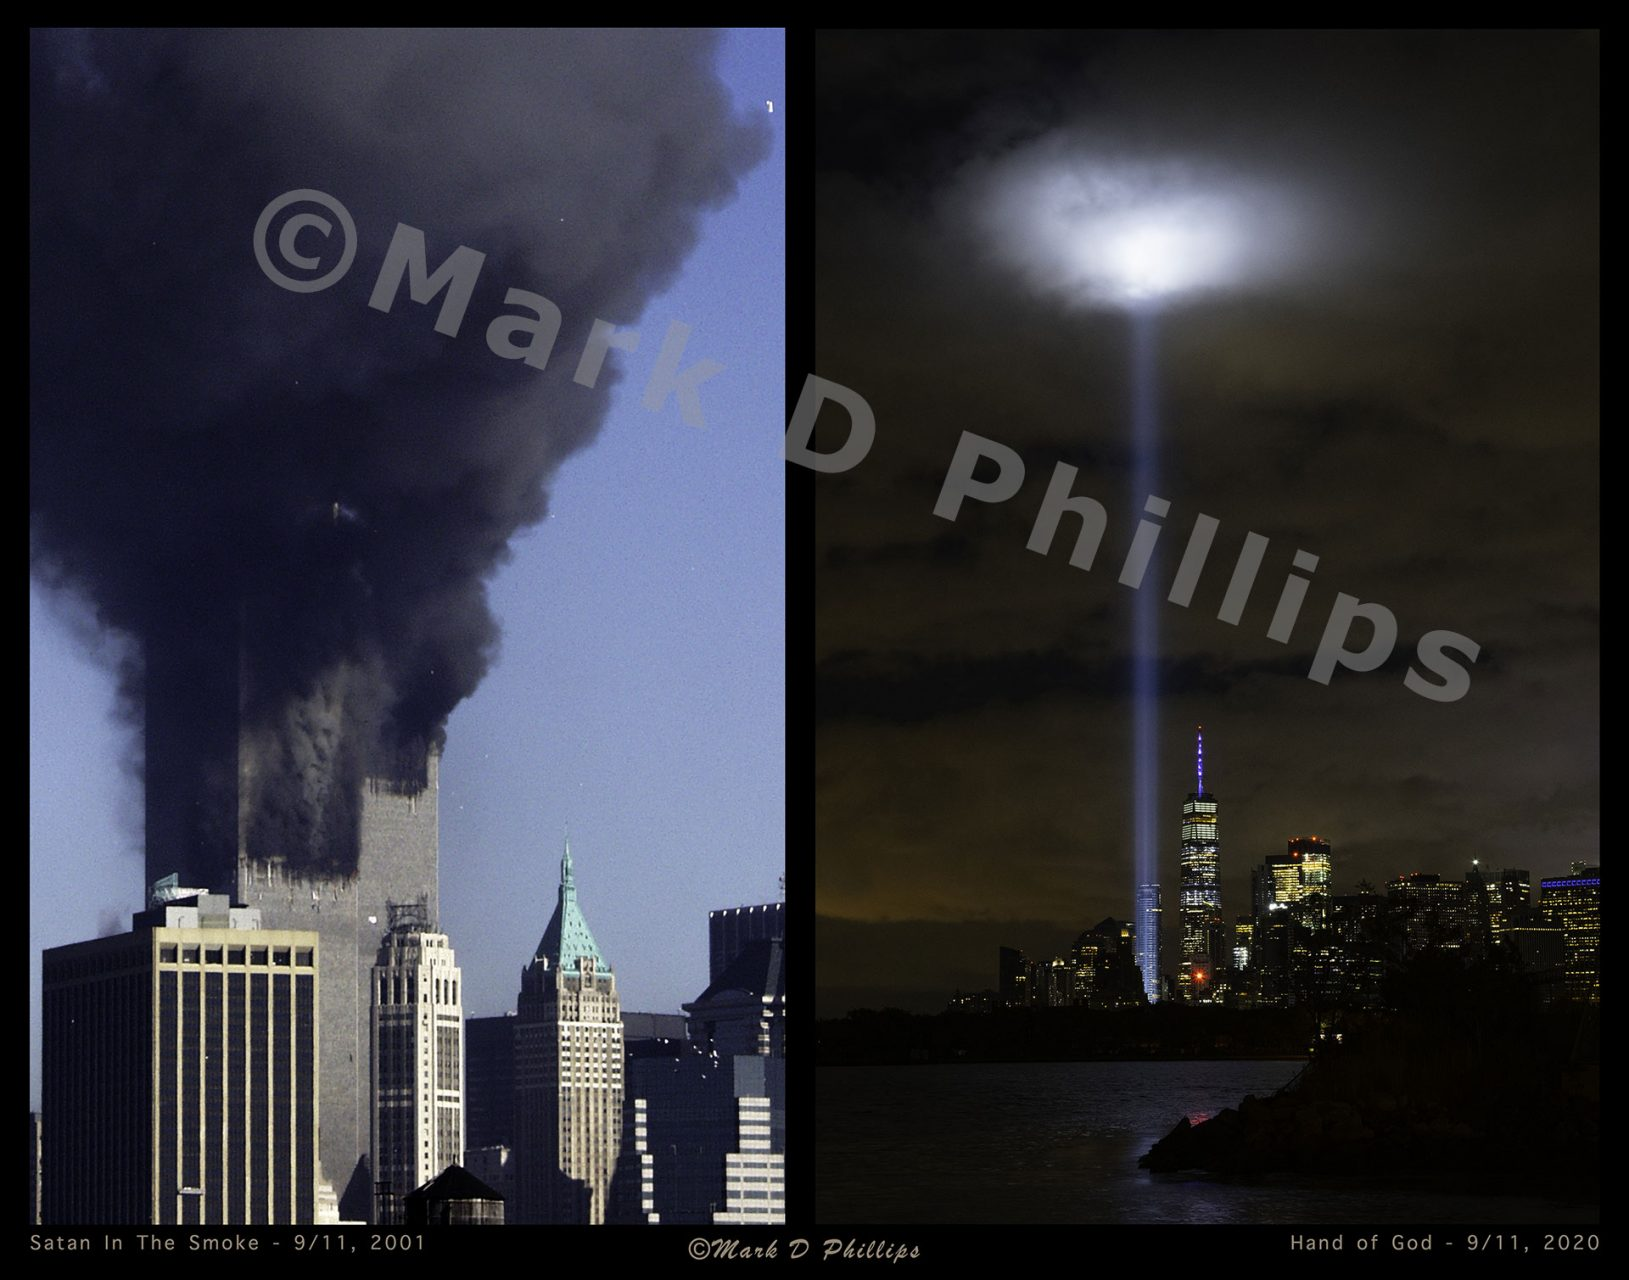 """This 9/11 Diptych is twenty years of New York 9/11 history with two images by Mark D Phillips - """"Satan in the Smoke"""" and """"The Hand of God"""" - printed on 11"""" x 14"""" aluminum, made to hang floating on the wall."""